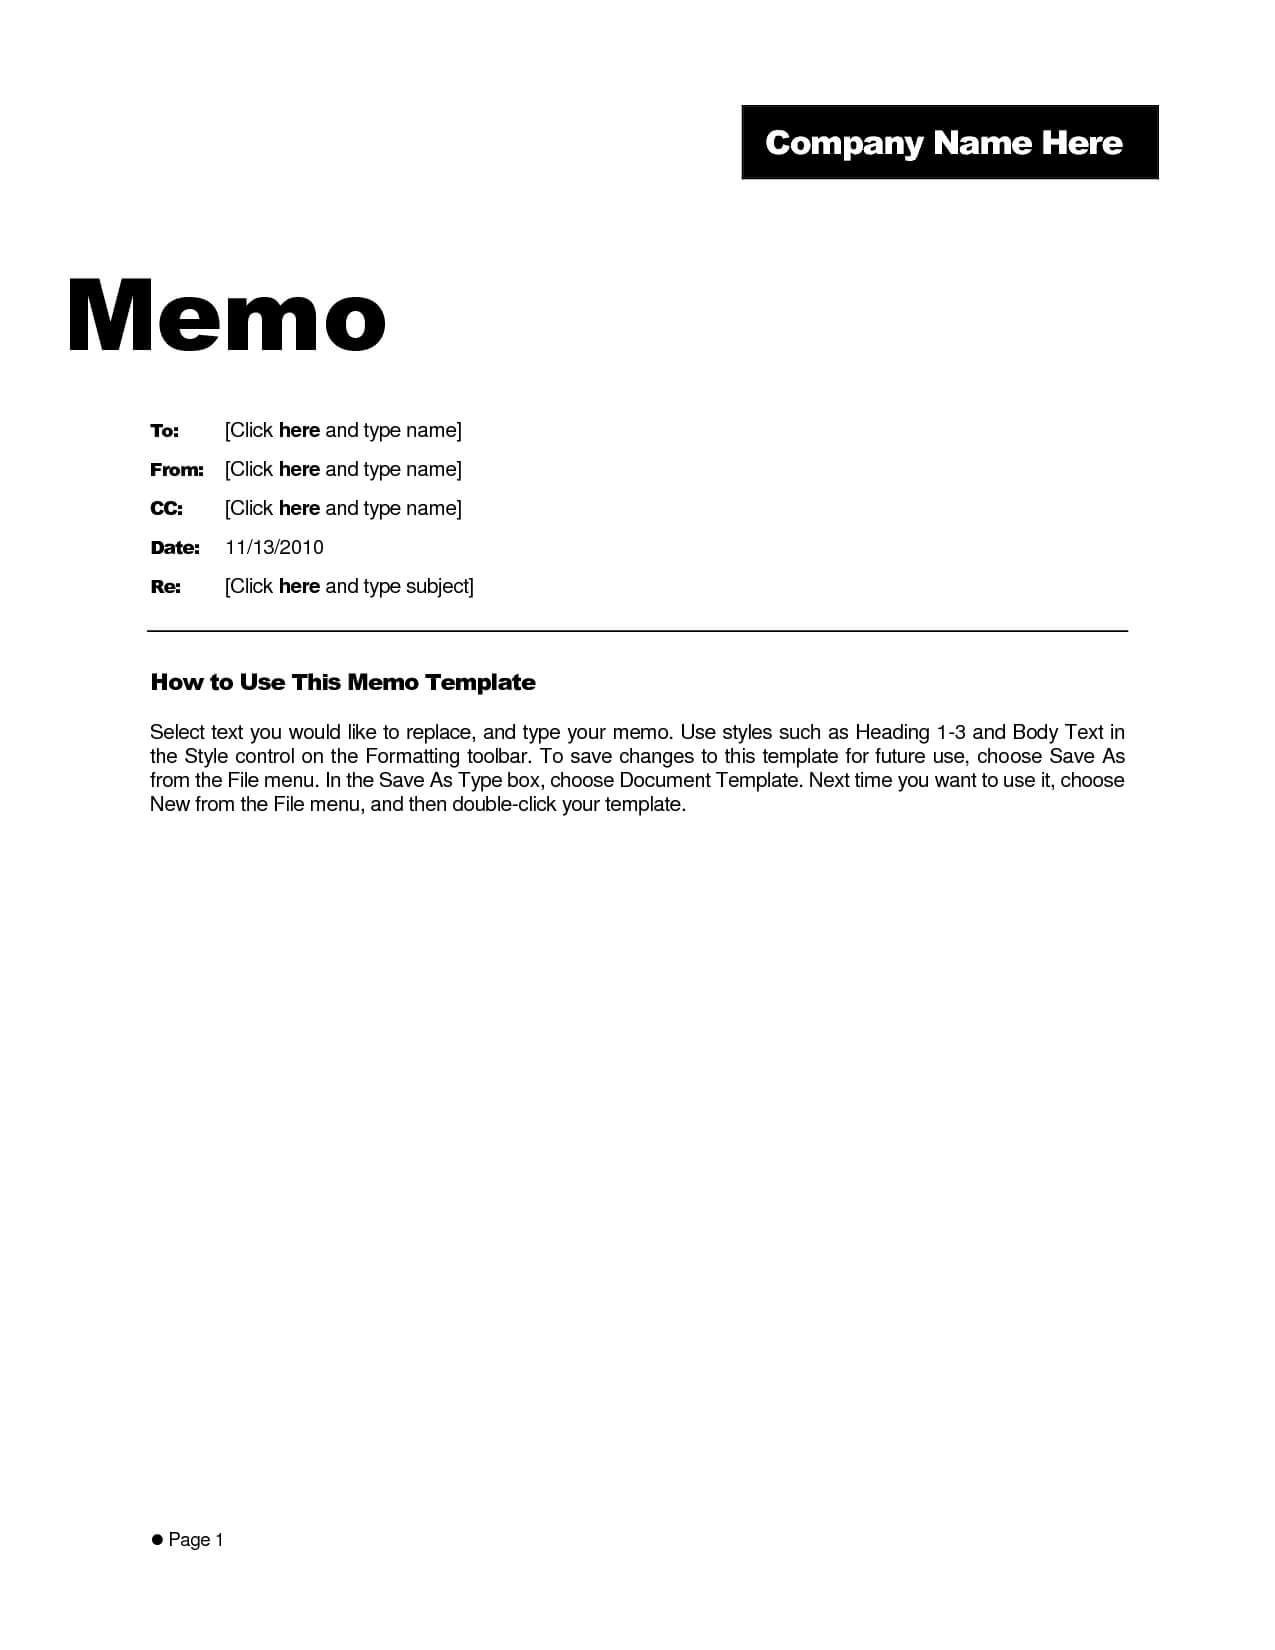 Memo Template Word 2010 - Cumed For Memo Template Word 2010